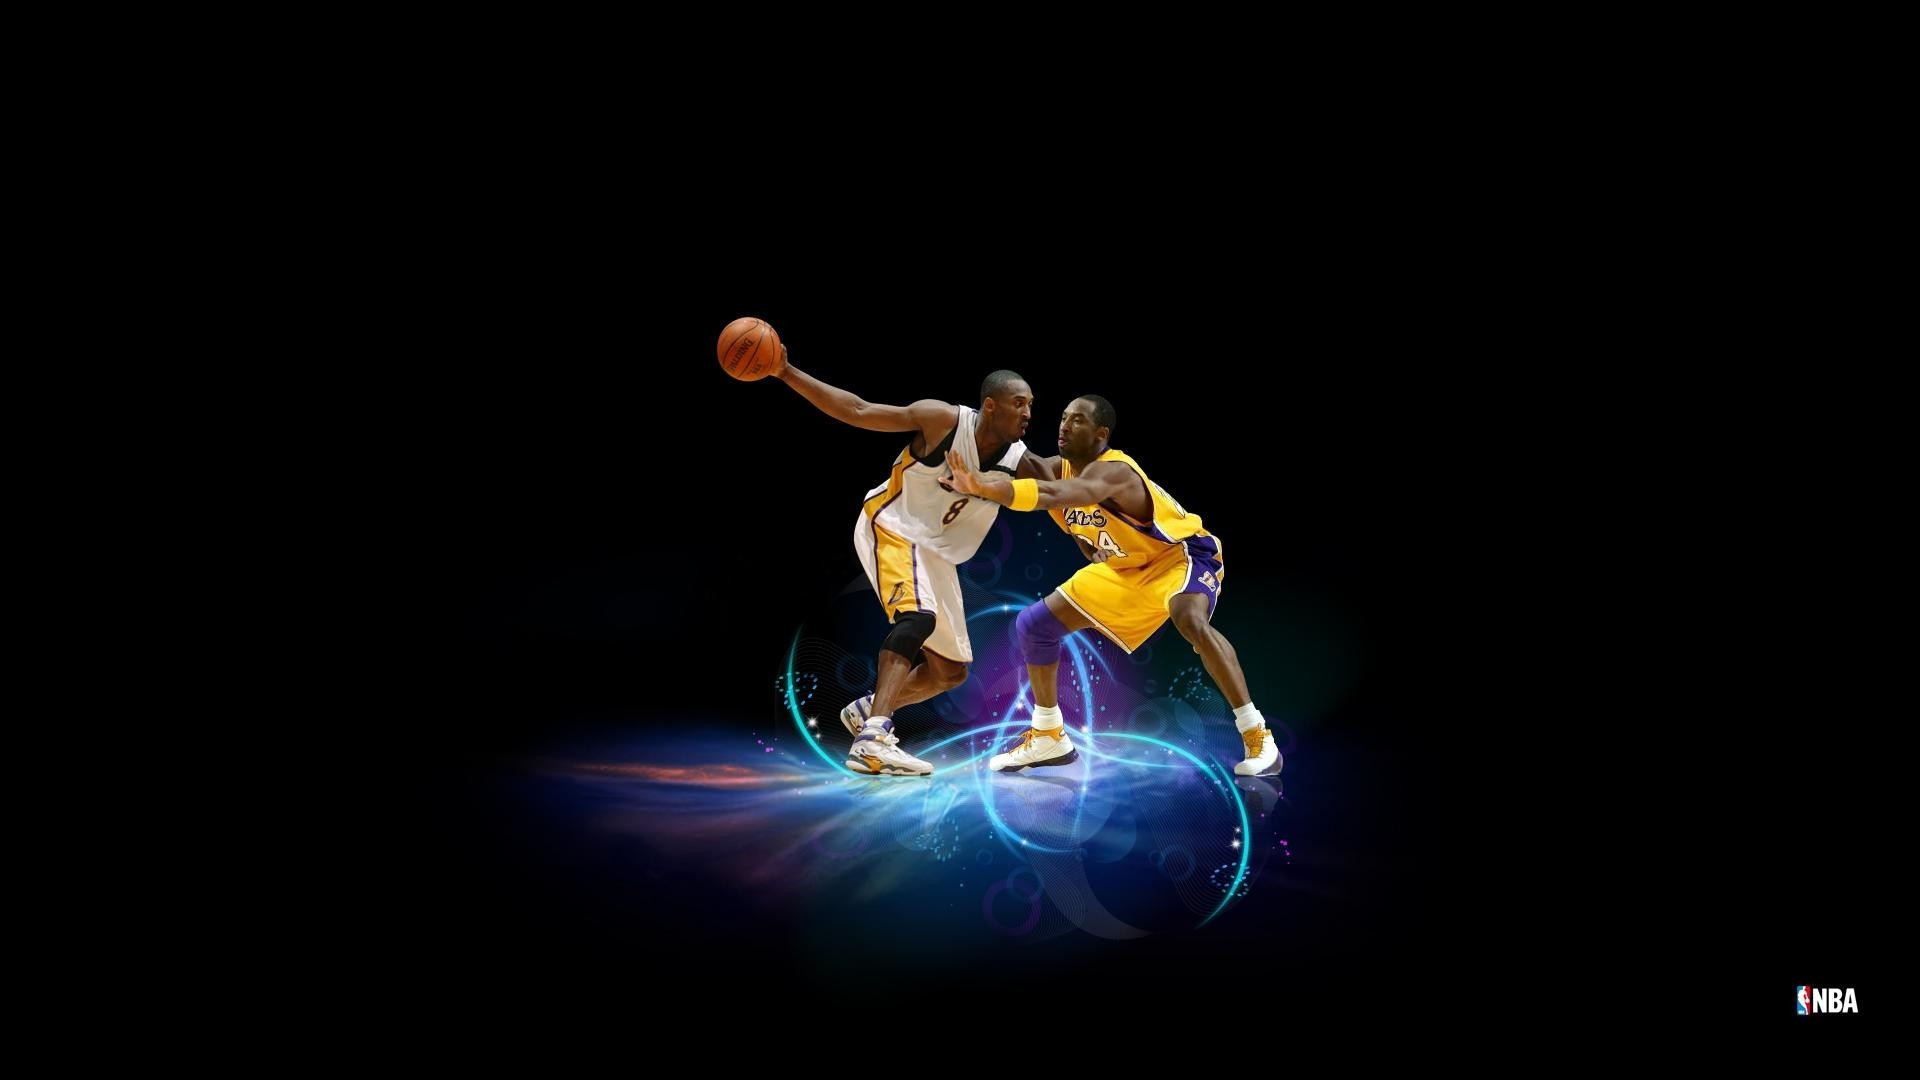 Cool 3D Wallpaper HD Basketball  68  images  1920x1200 HD Basketball Wallpapers For Desktop   Mobile 1080pHD Wallpapers  Only